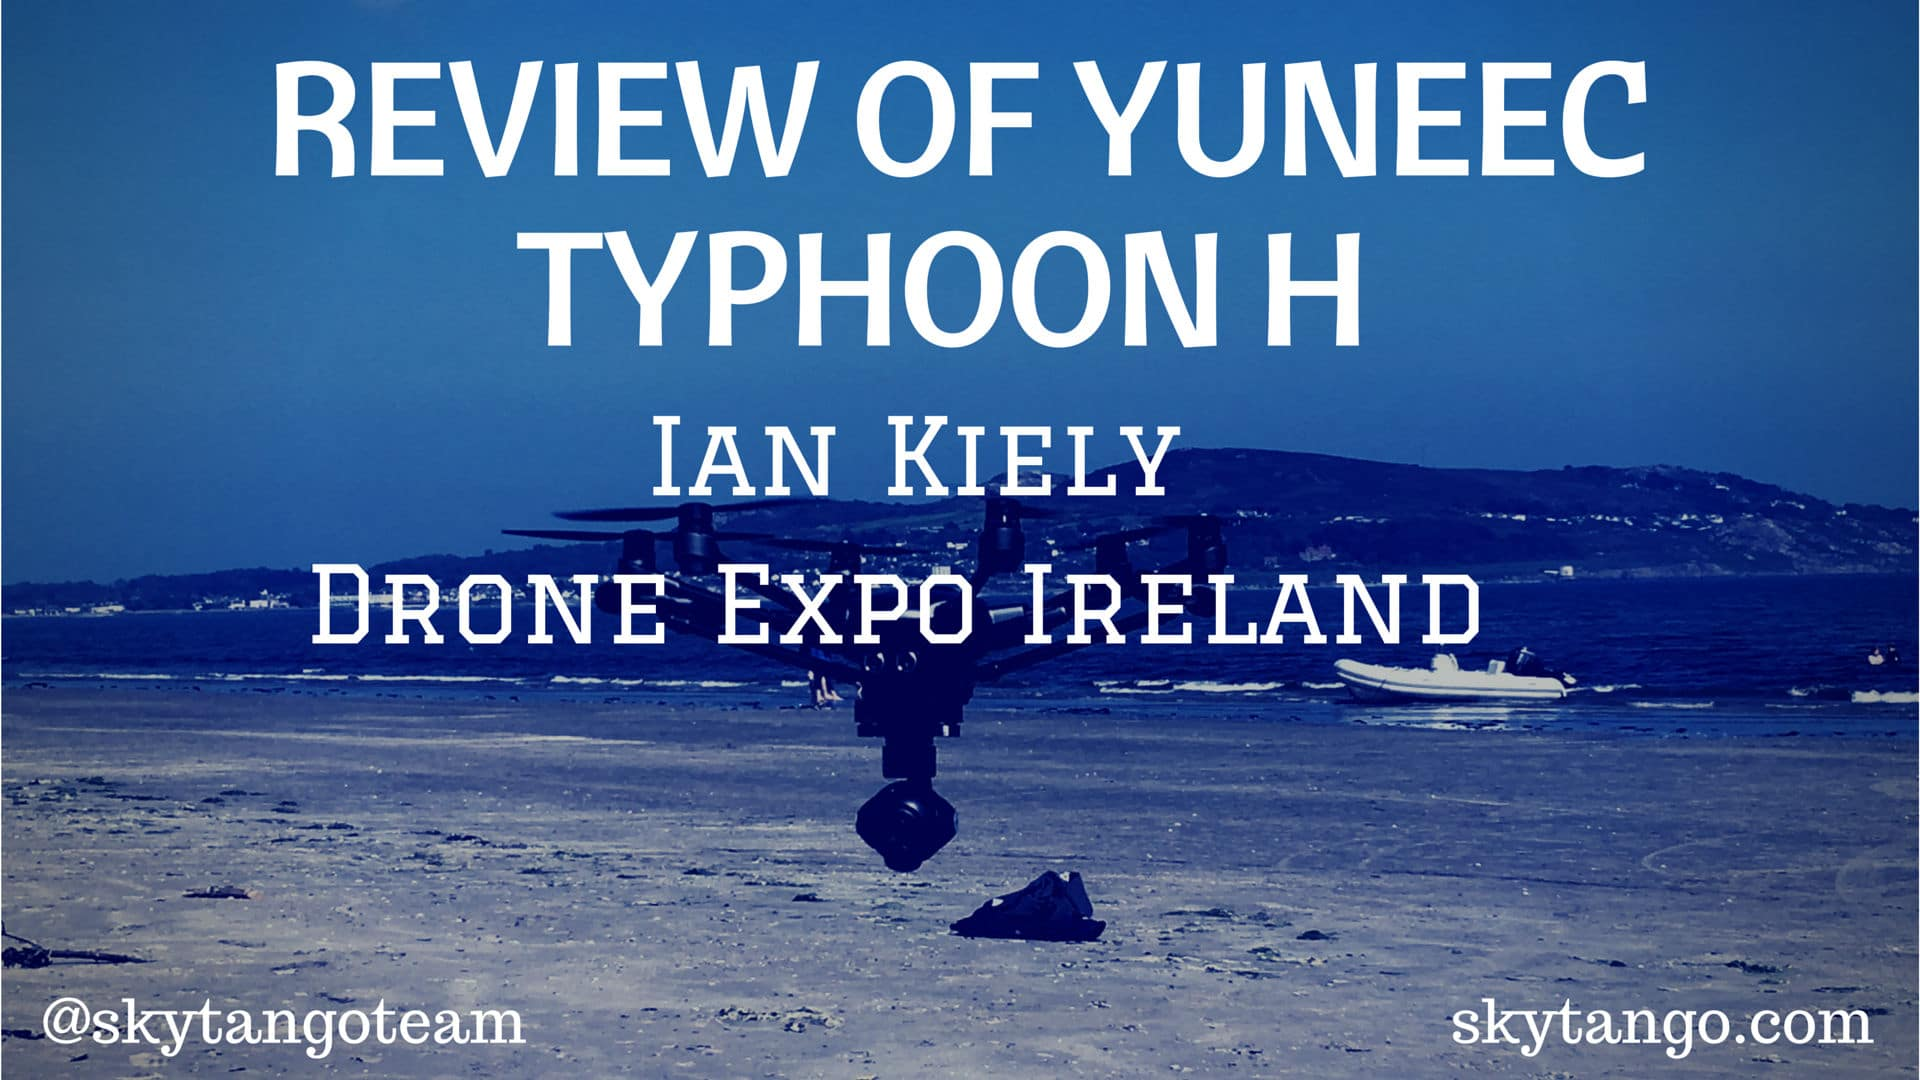 Review of Yuneec Typhoon H - by Ian Kiely